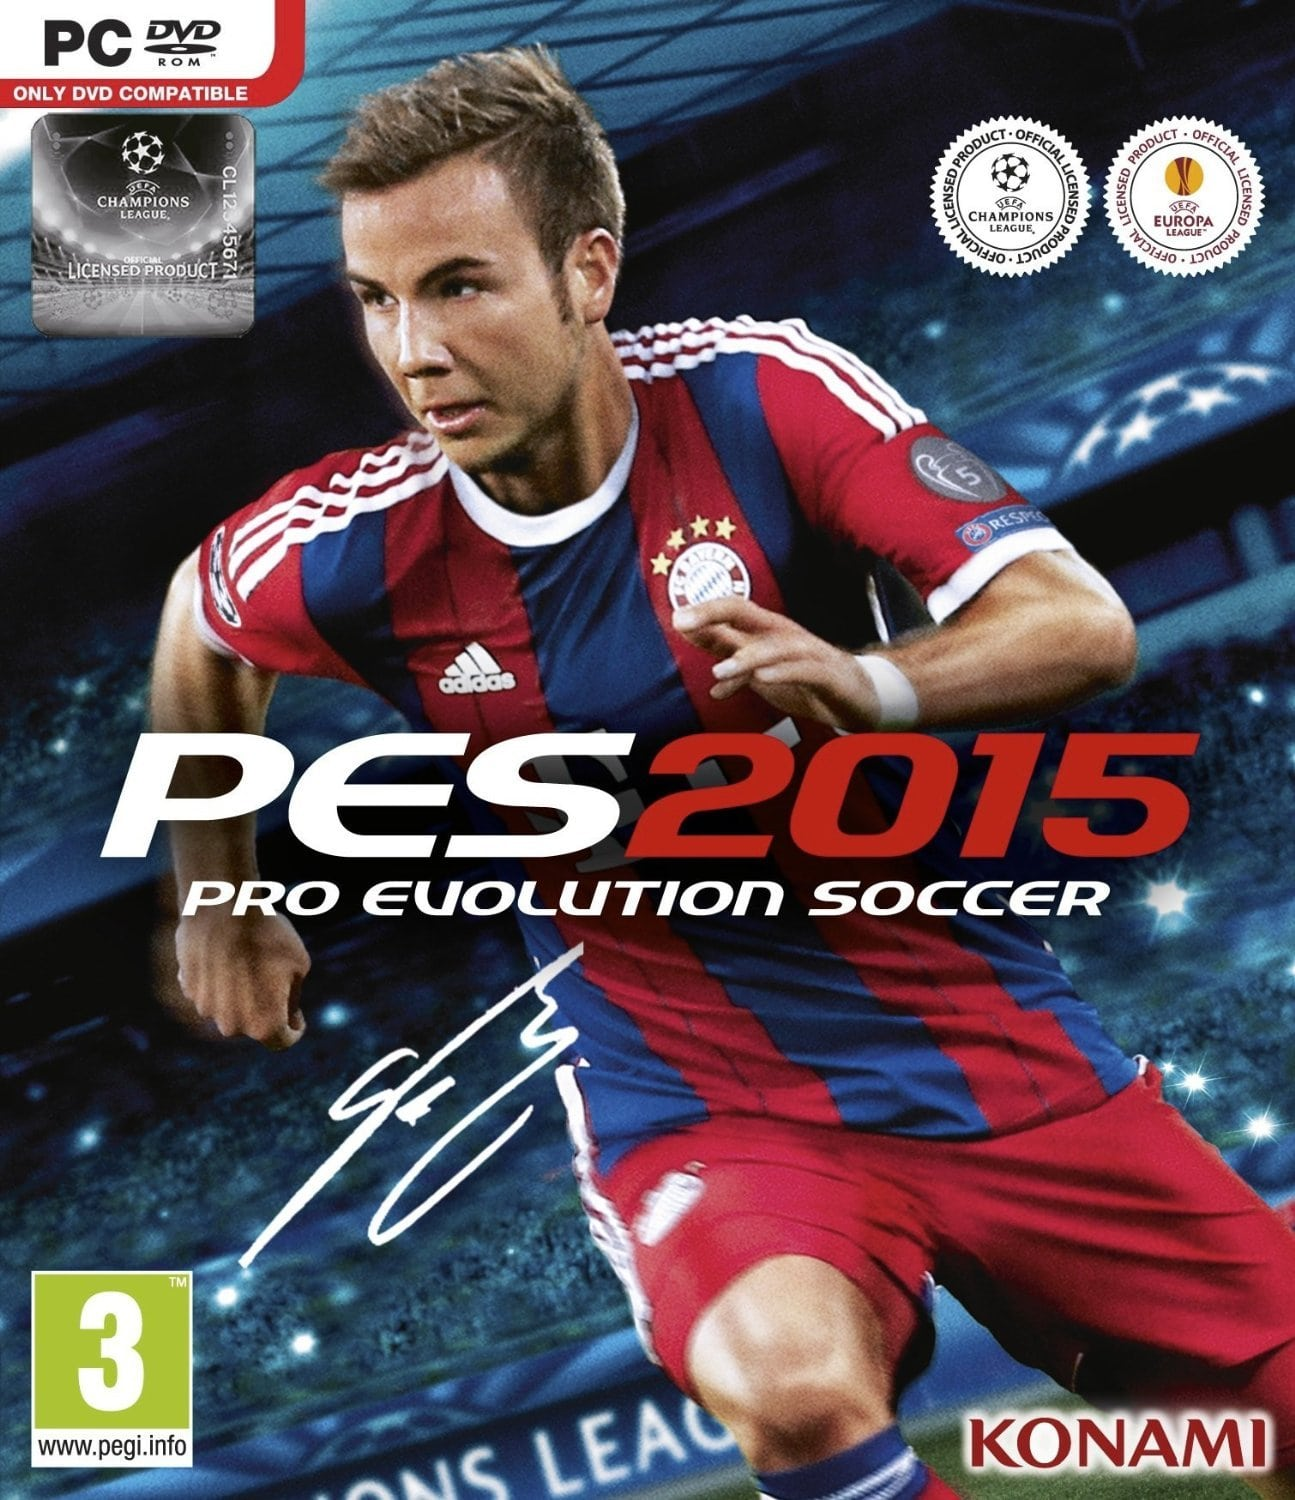 Download Gratis Pro Evolution Soccer 2015 Full Version